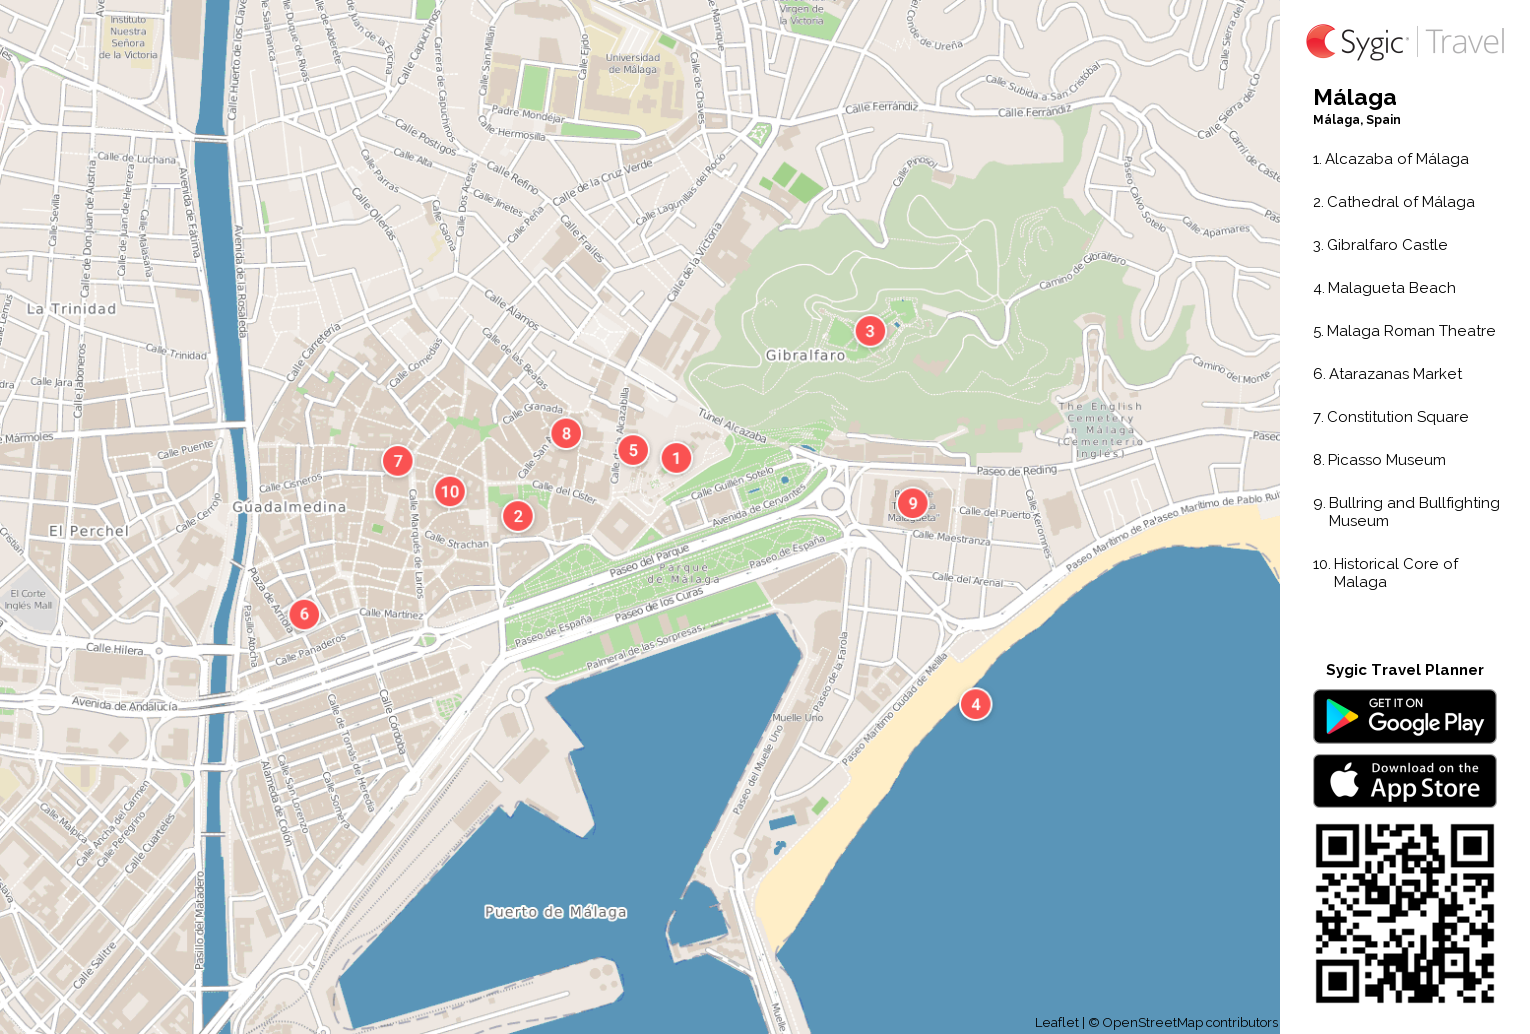 malaga karta Málaga Printable Tourist Map | Sygic Travel malaga karta